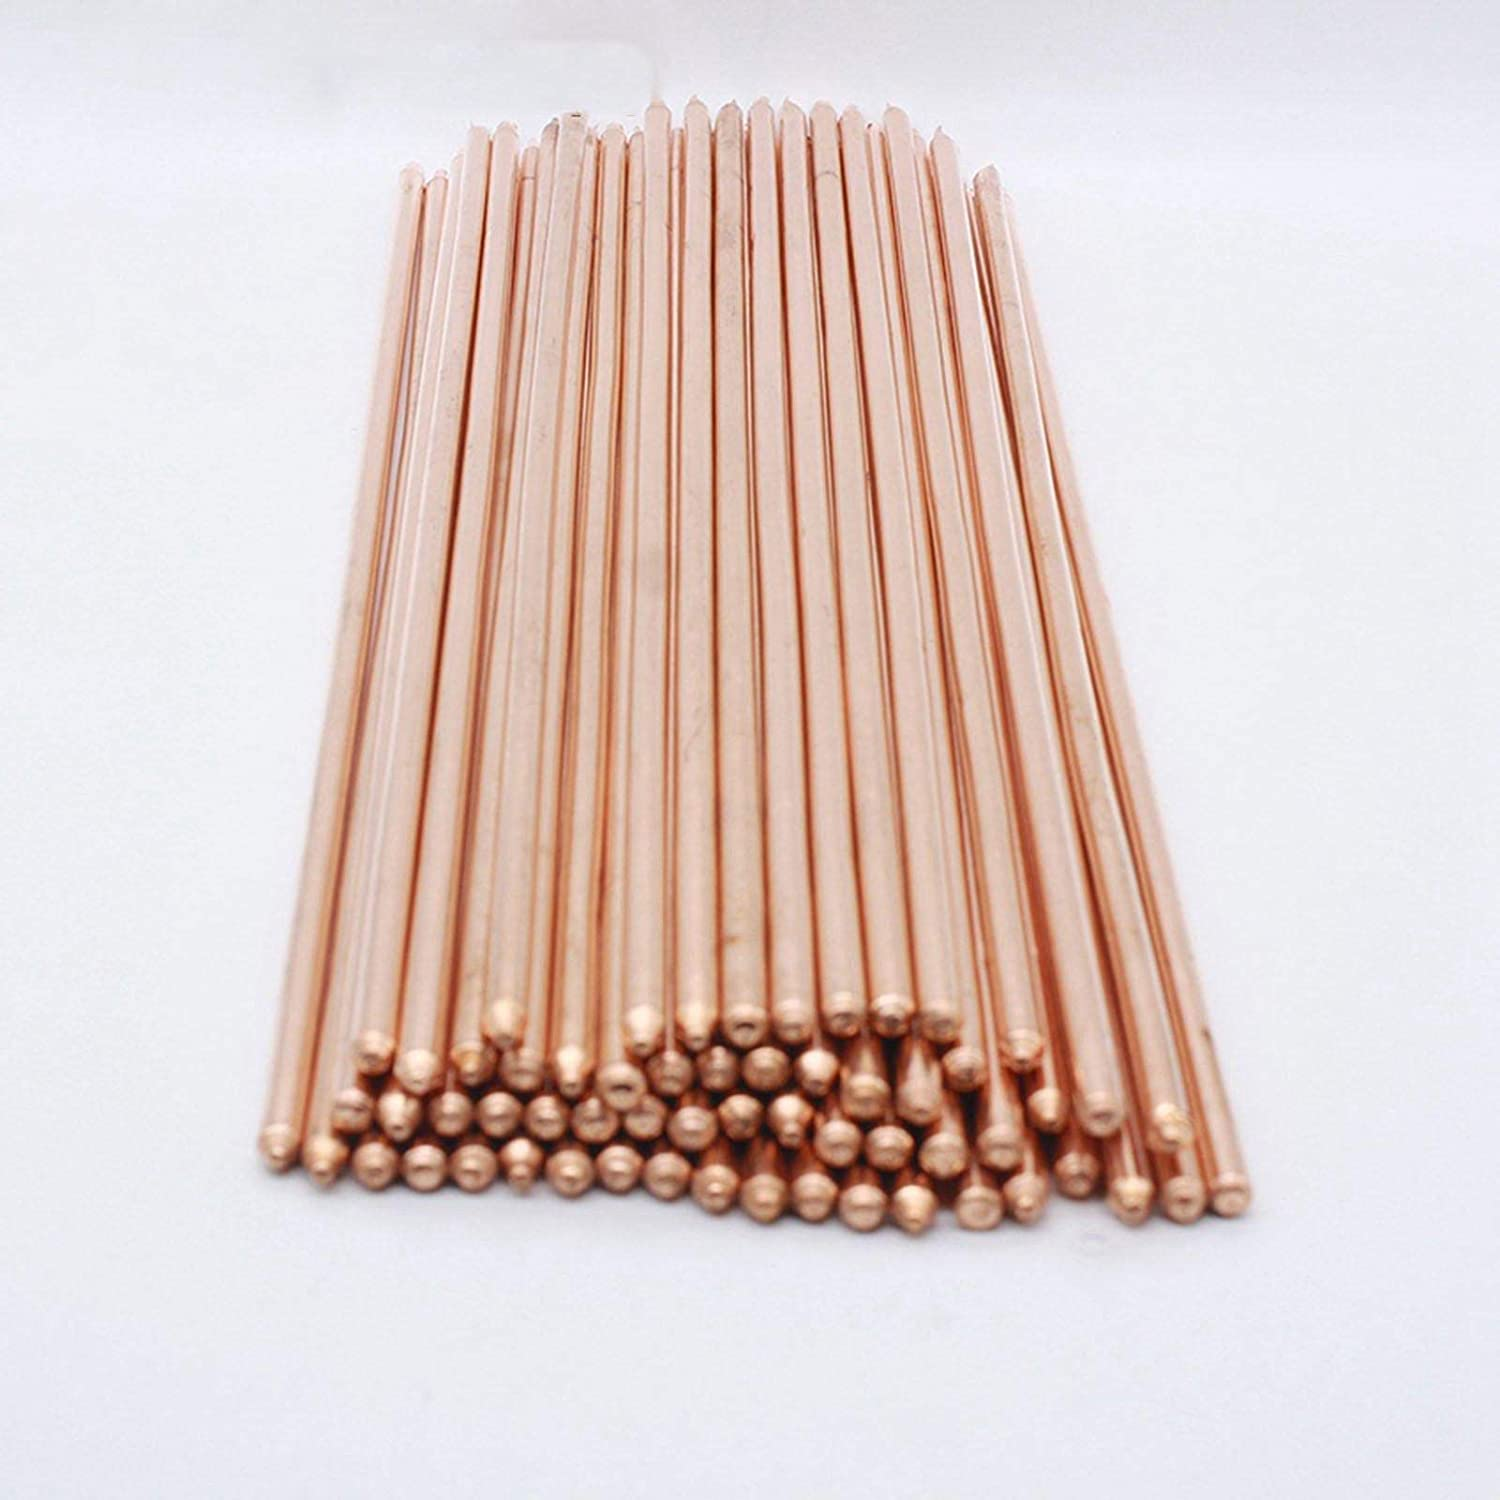 220mm Length 10mm Diam Cooling Round Rod Copper Heatsink Heatpipe Laptop DIY